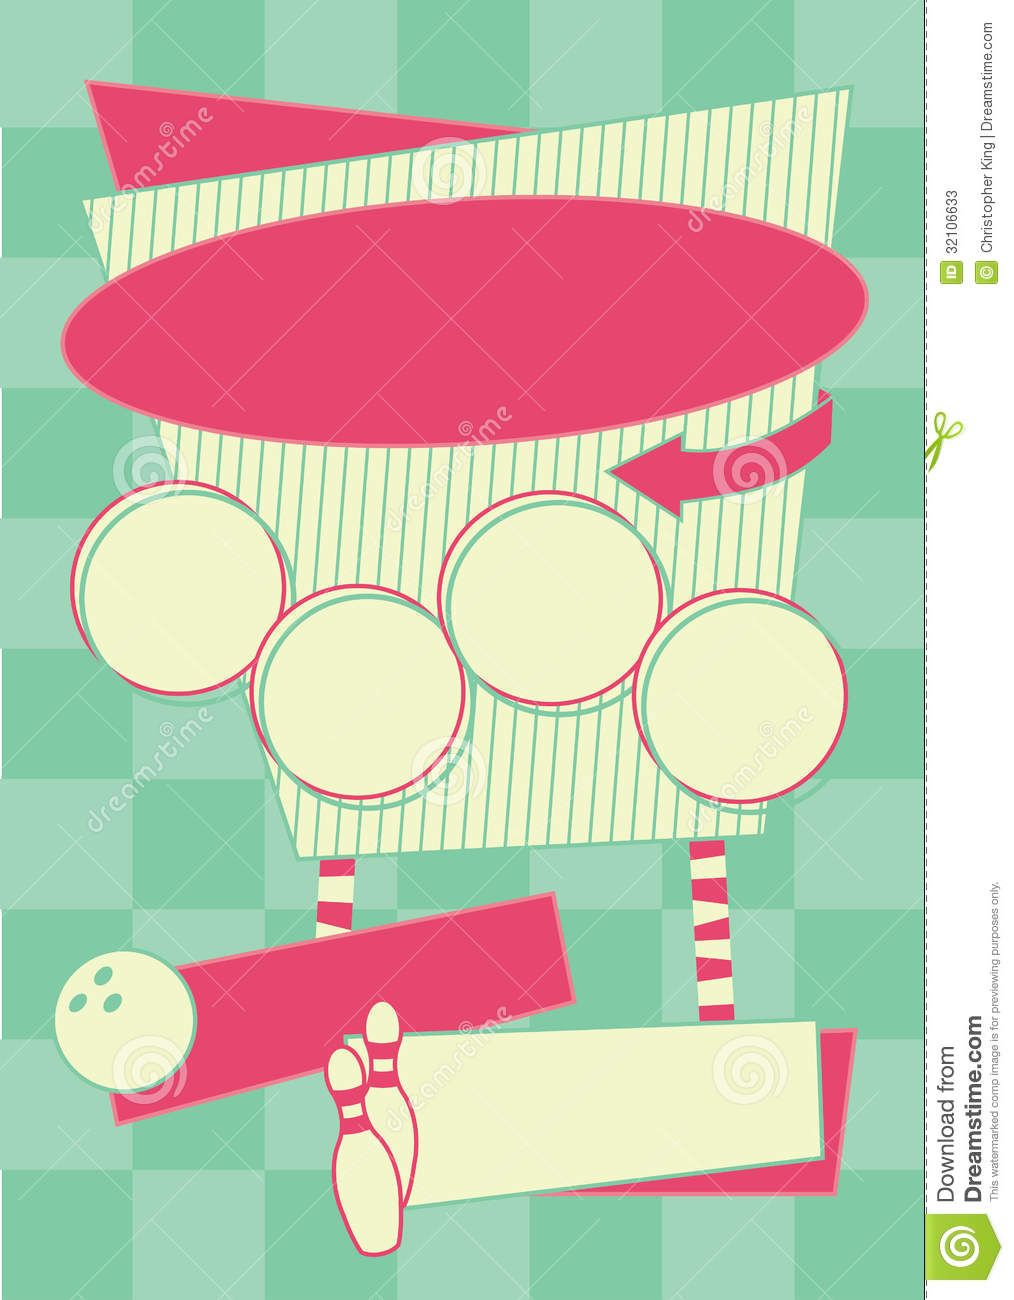 1950s Bowling Style Background And Frame Stock Photos - Image ...